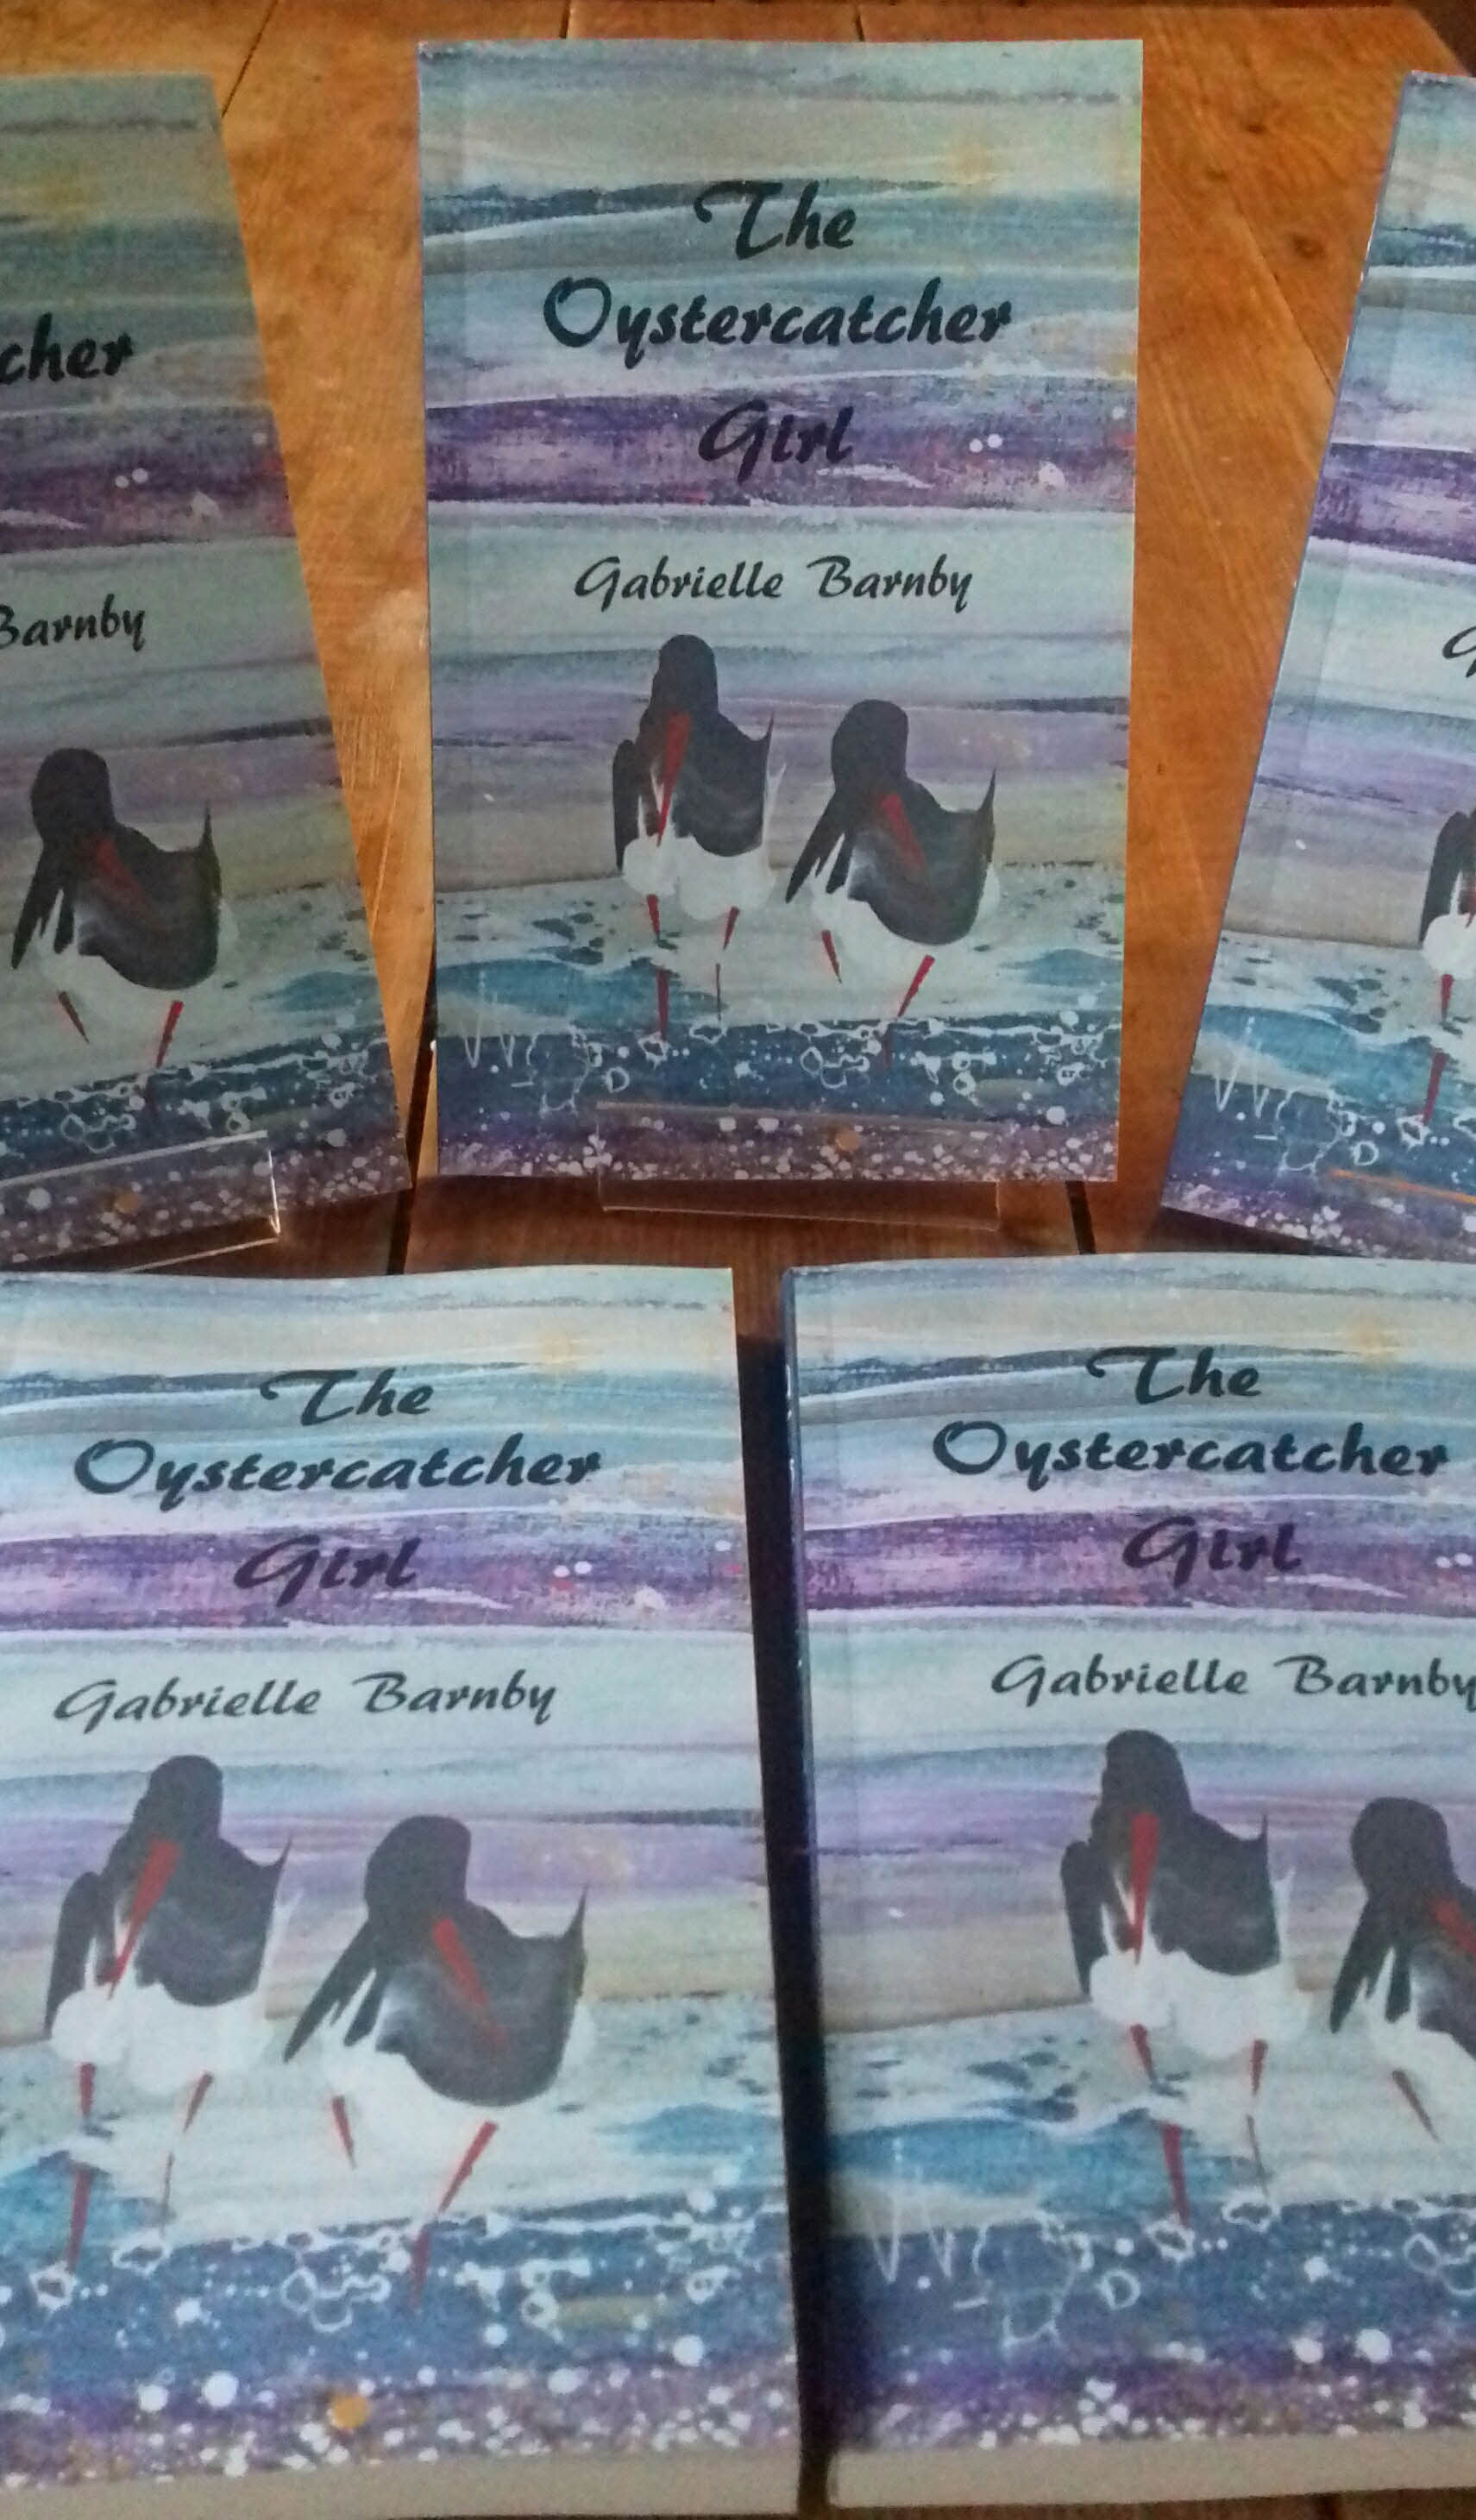 Romance, mystery, Scotland, The Oystercatcher Girl, Gabrielle Barnby, Orkney, love, forgiveness, redemption, ThunderPoint, debut novel